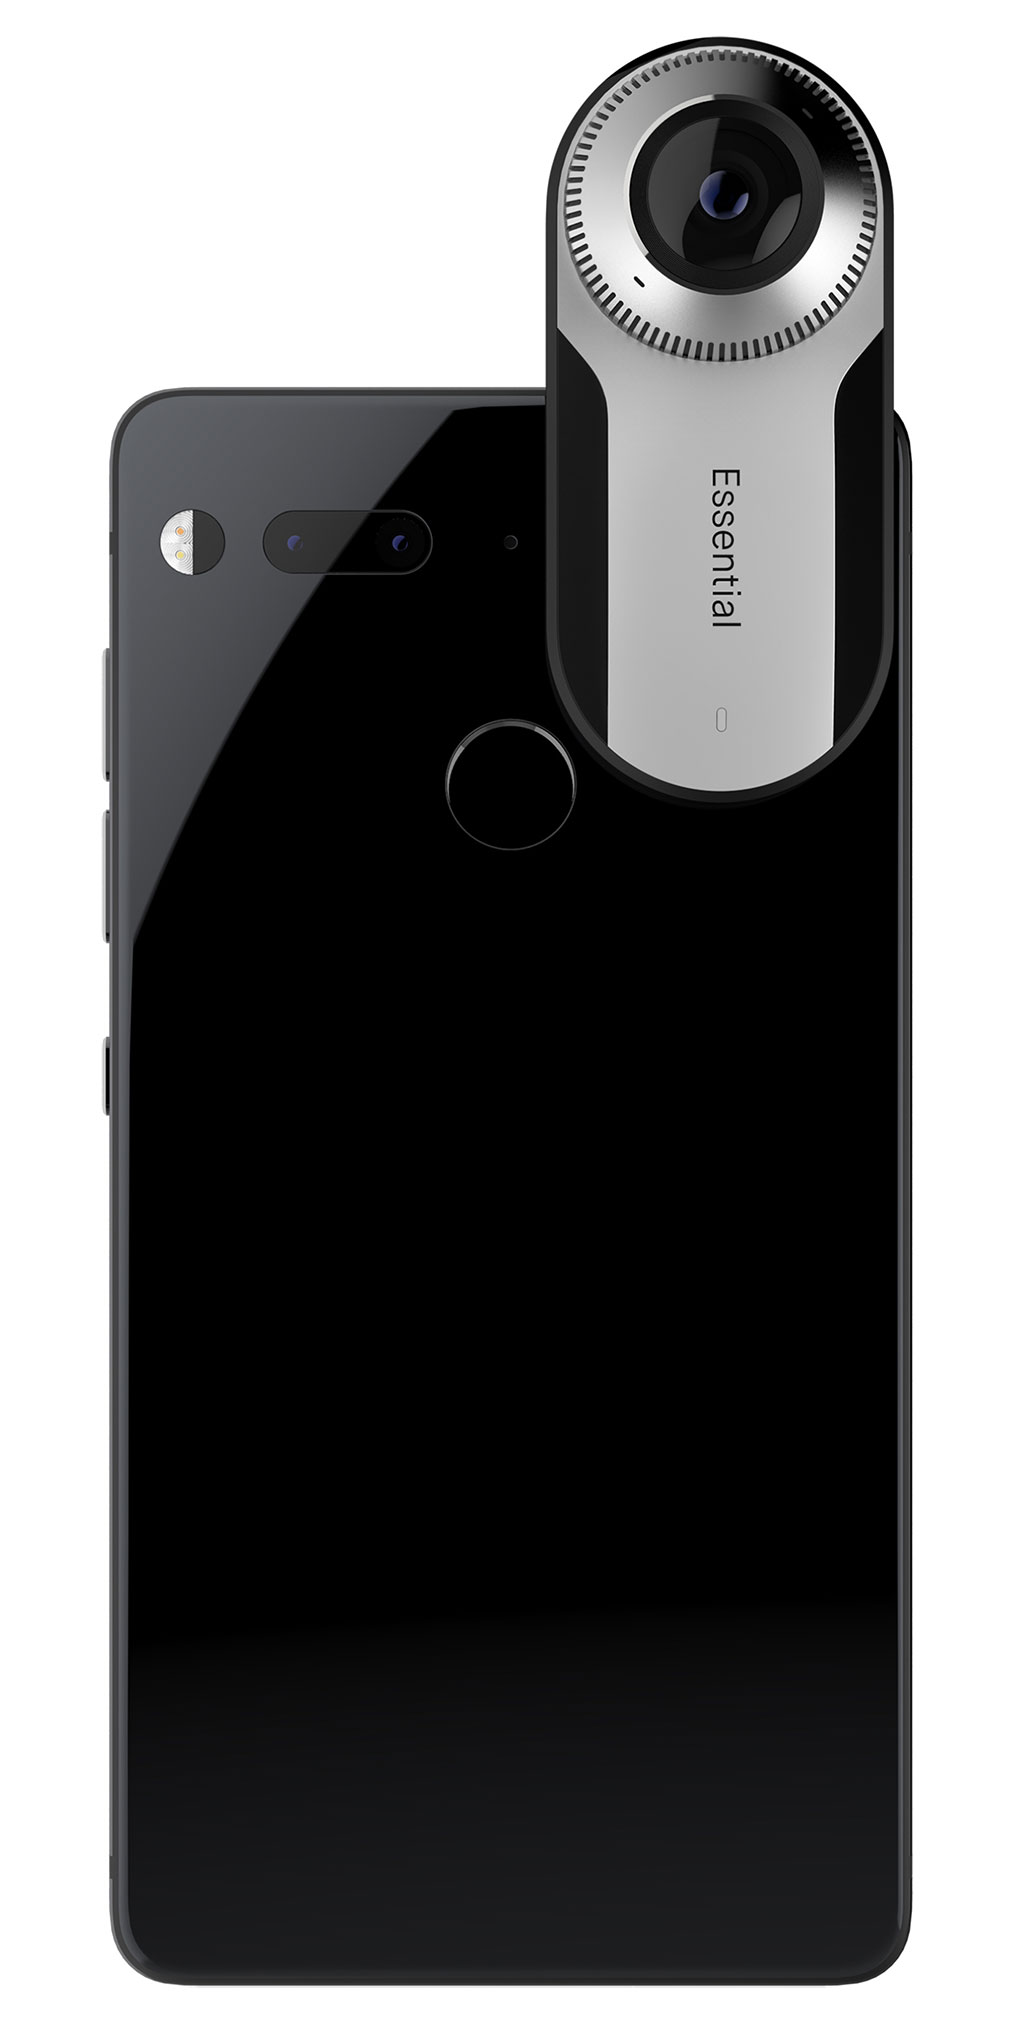 The Essential Phone with docked 360° camera. (Picture: Essential)